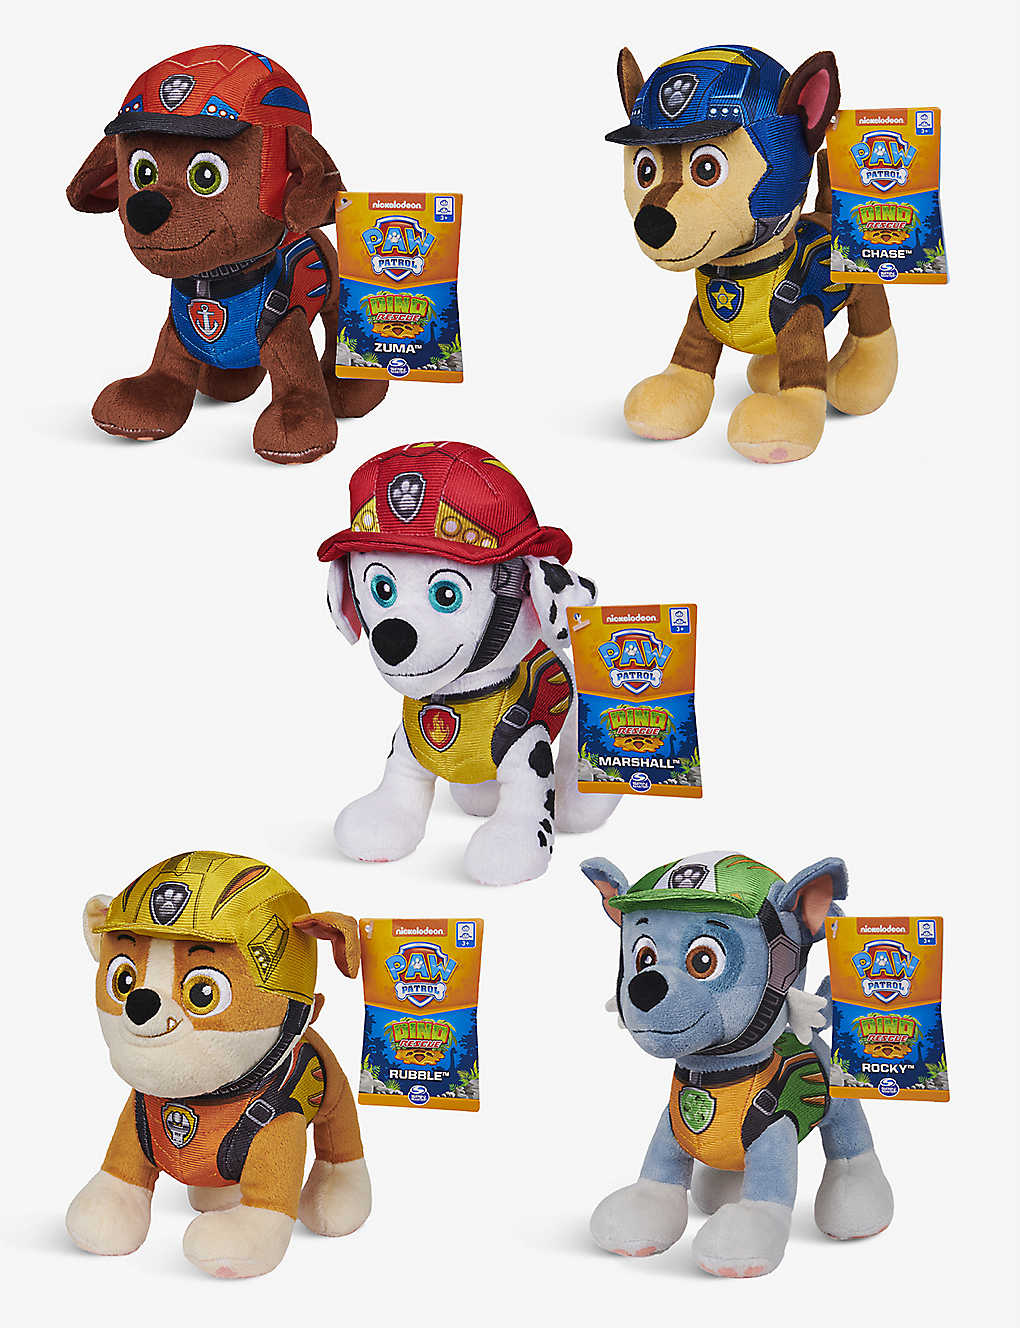 PAW PATROL: Dino Rescue Pup and Dinosaur assorted action figures